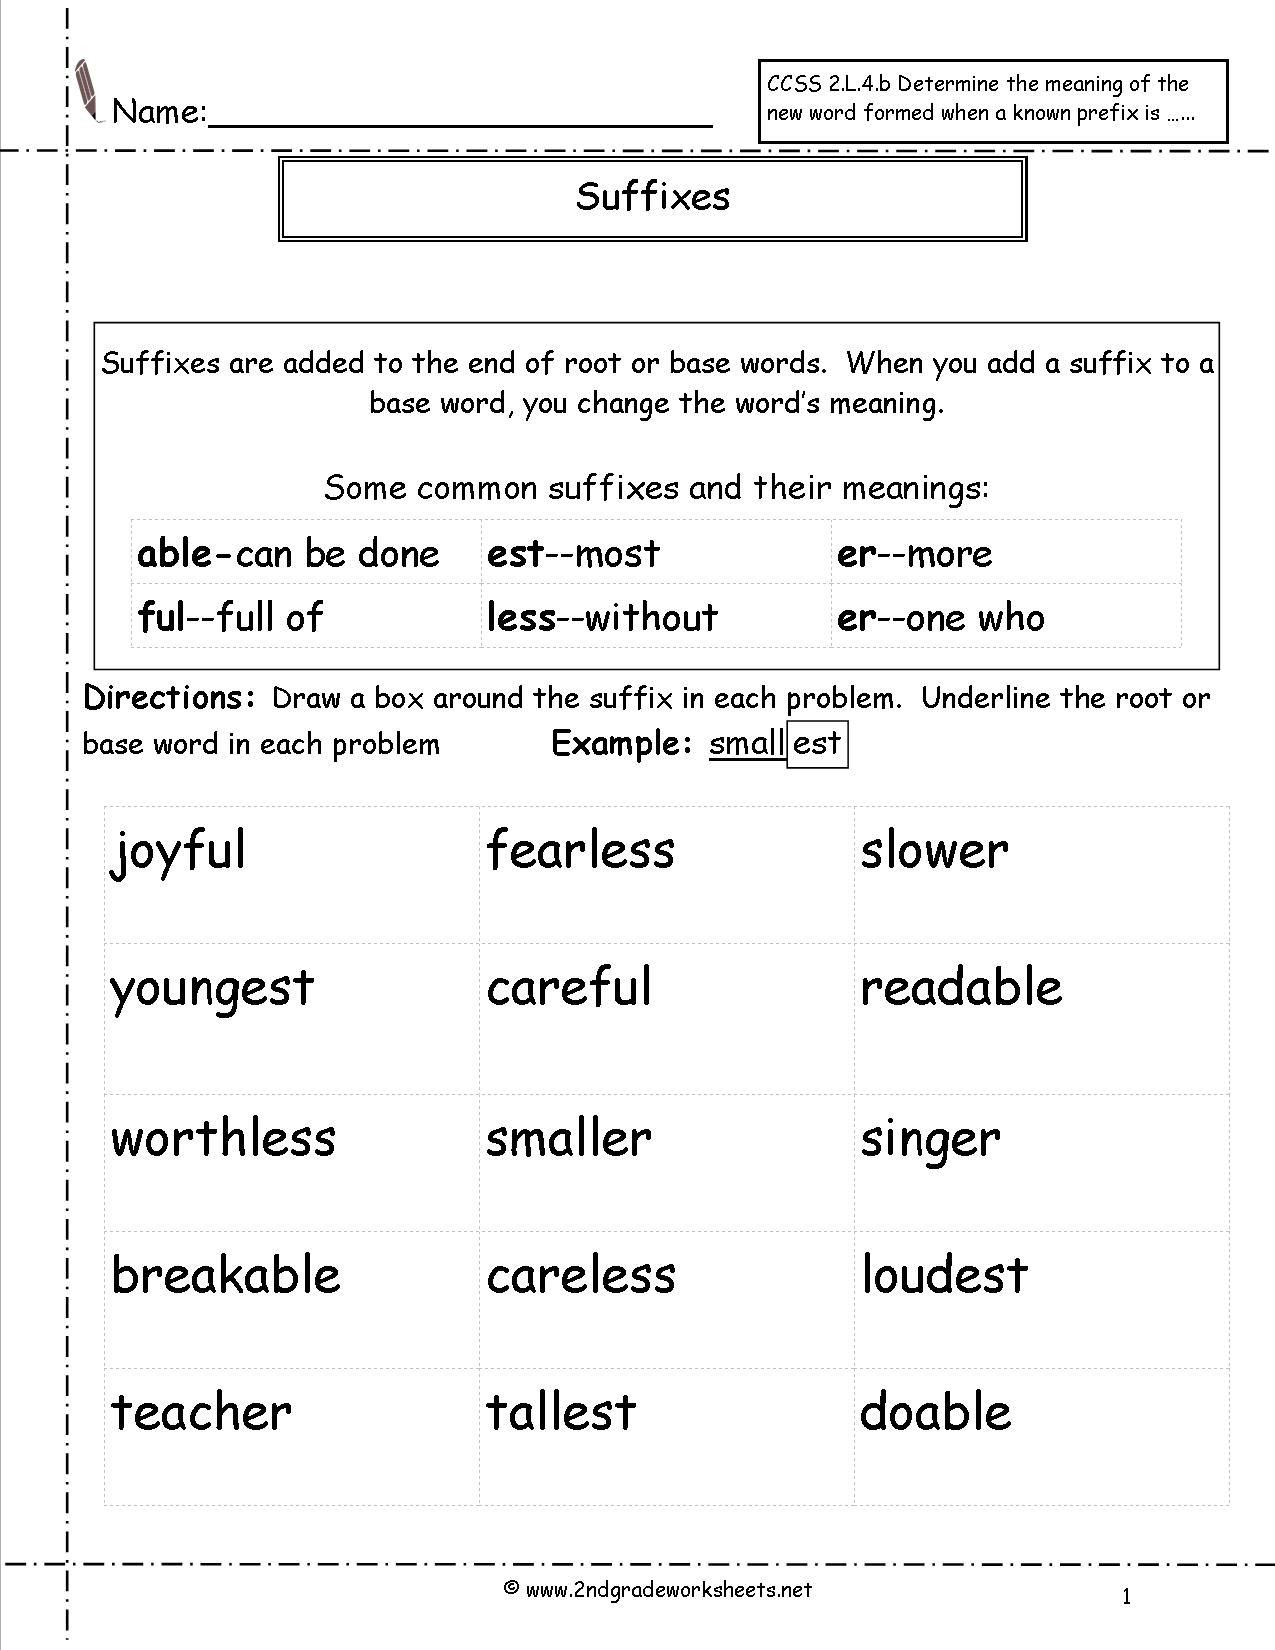 Suffix Worksheets 2nd Grade 41 Innovative Prefix Worksheets for You